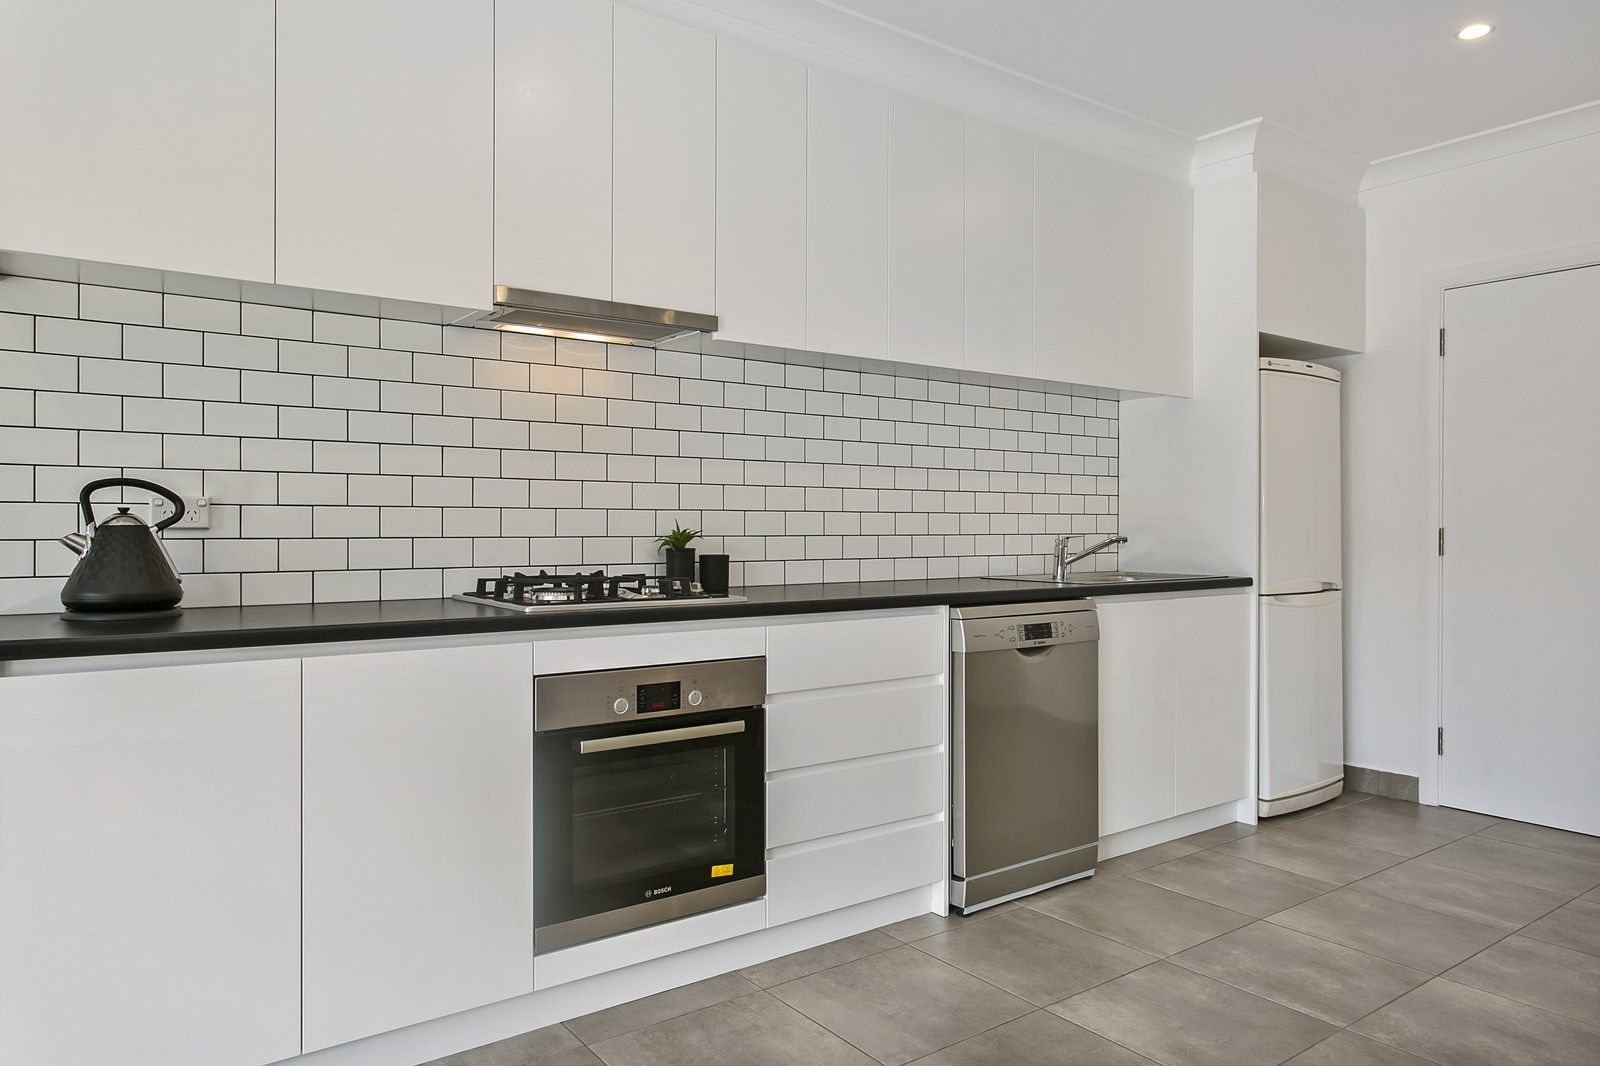 2/54 Burchmore Road, Manly Vale NSW 2093, Image 1